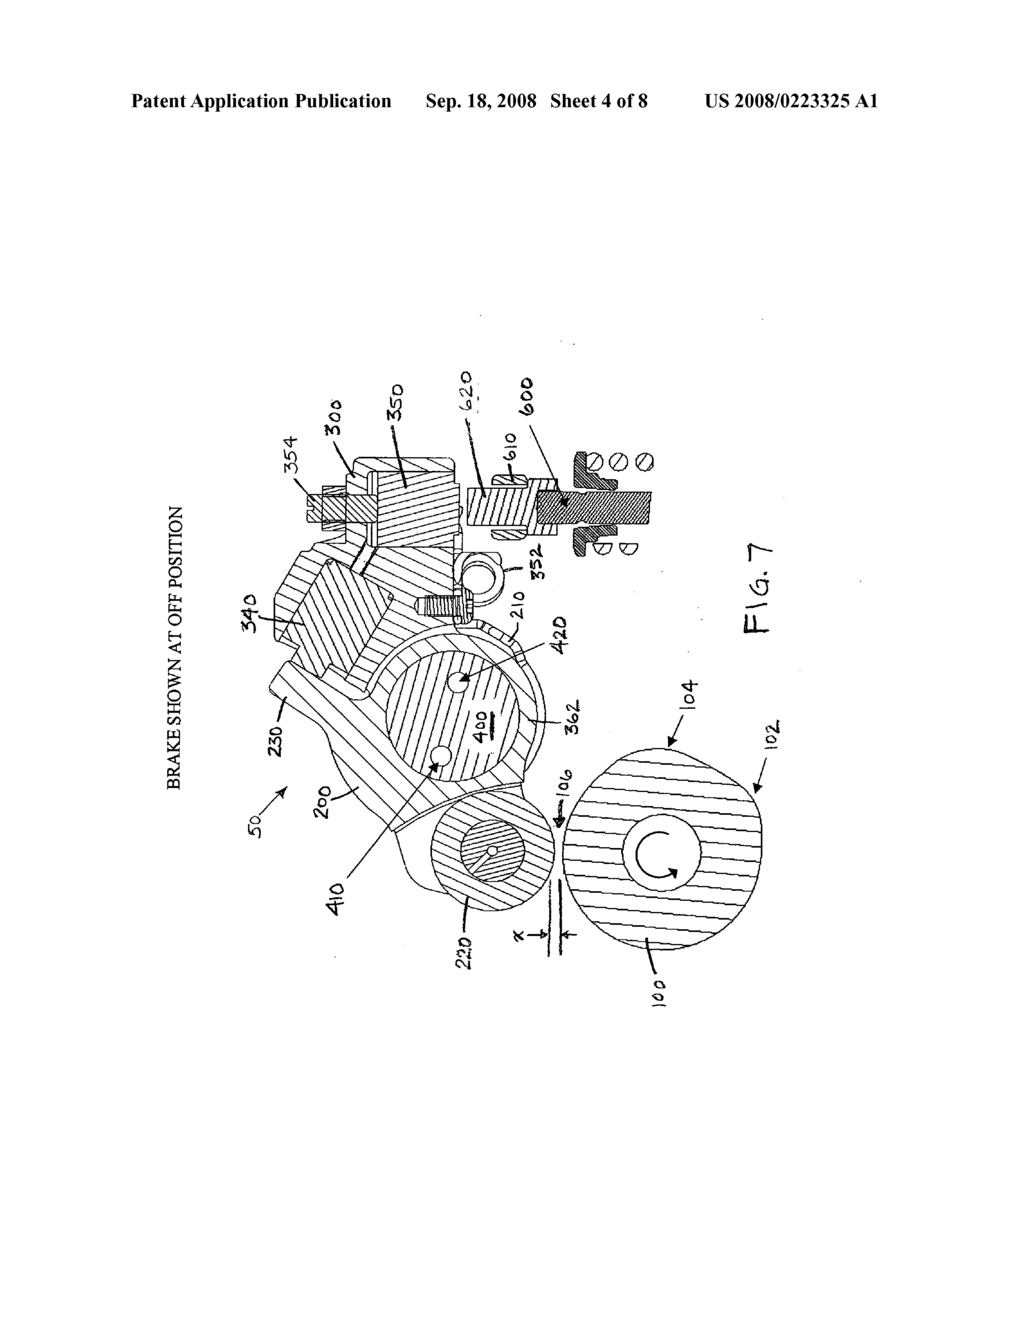 Engine Brake Having An Articulated Rocker Arm And A Shaft Diagram Mounted Housing Schematic Image 05